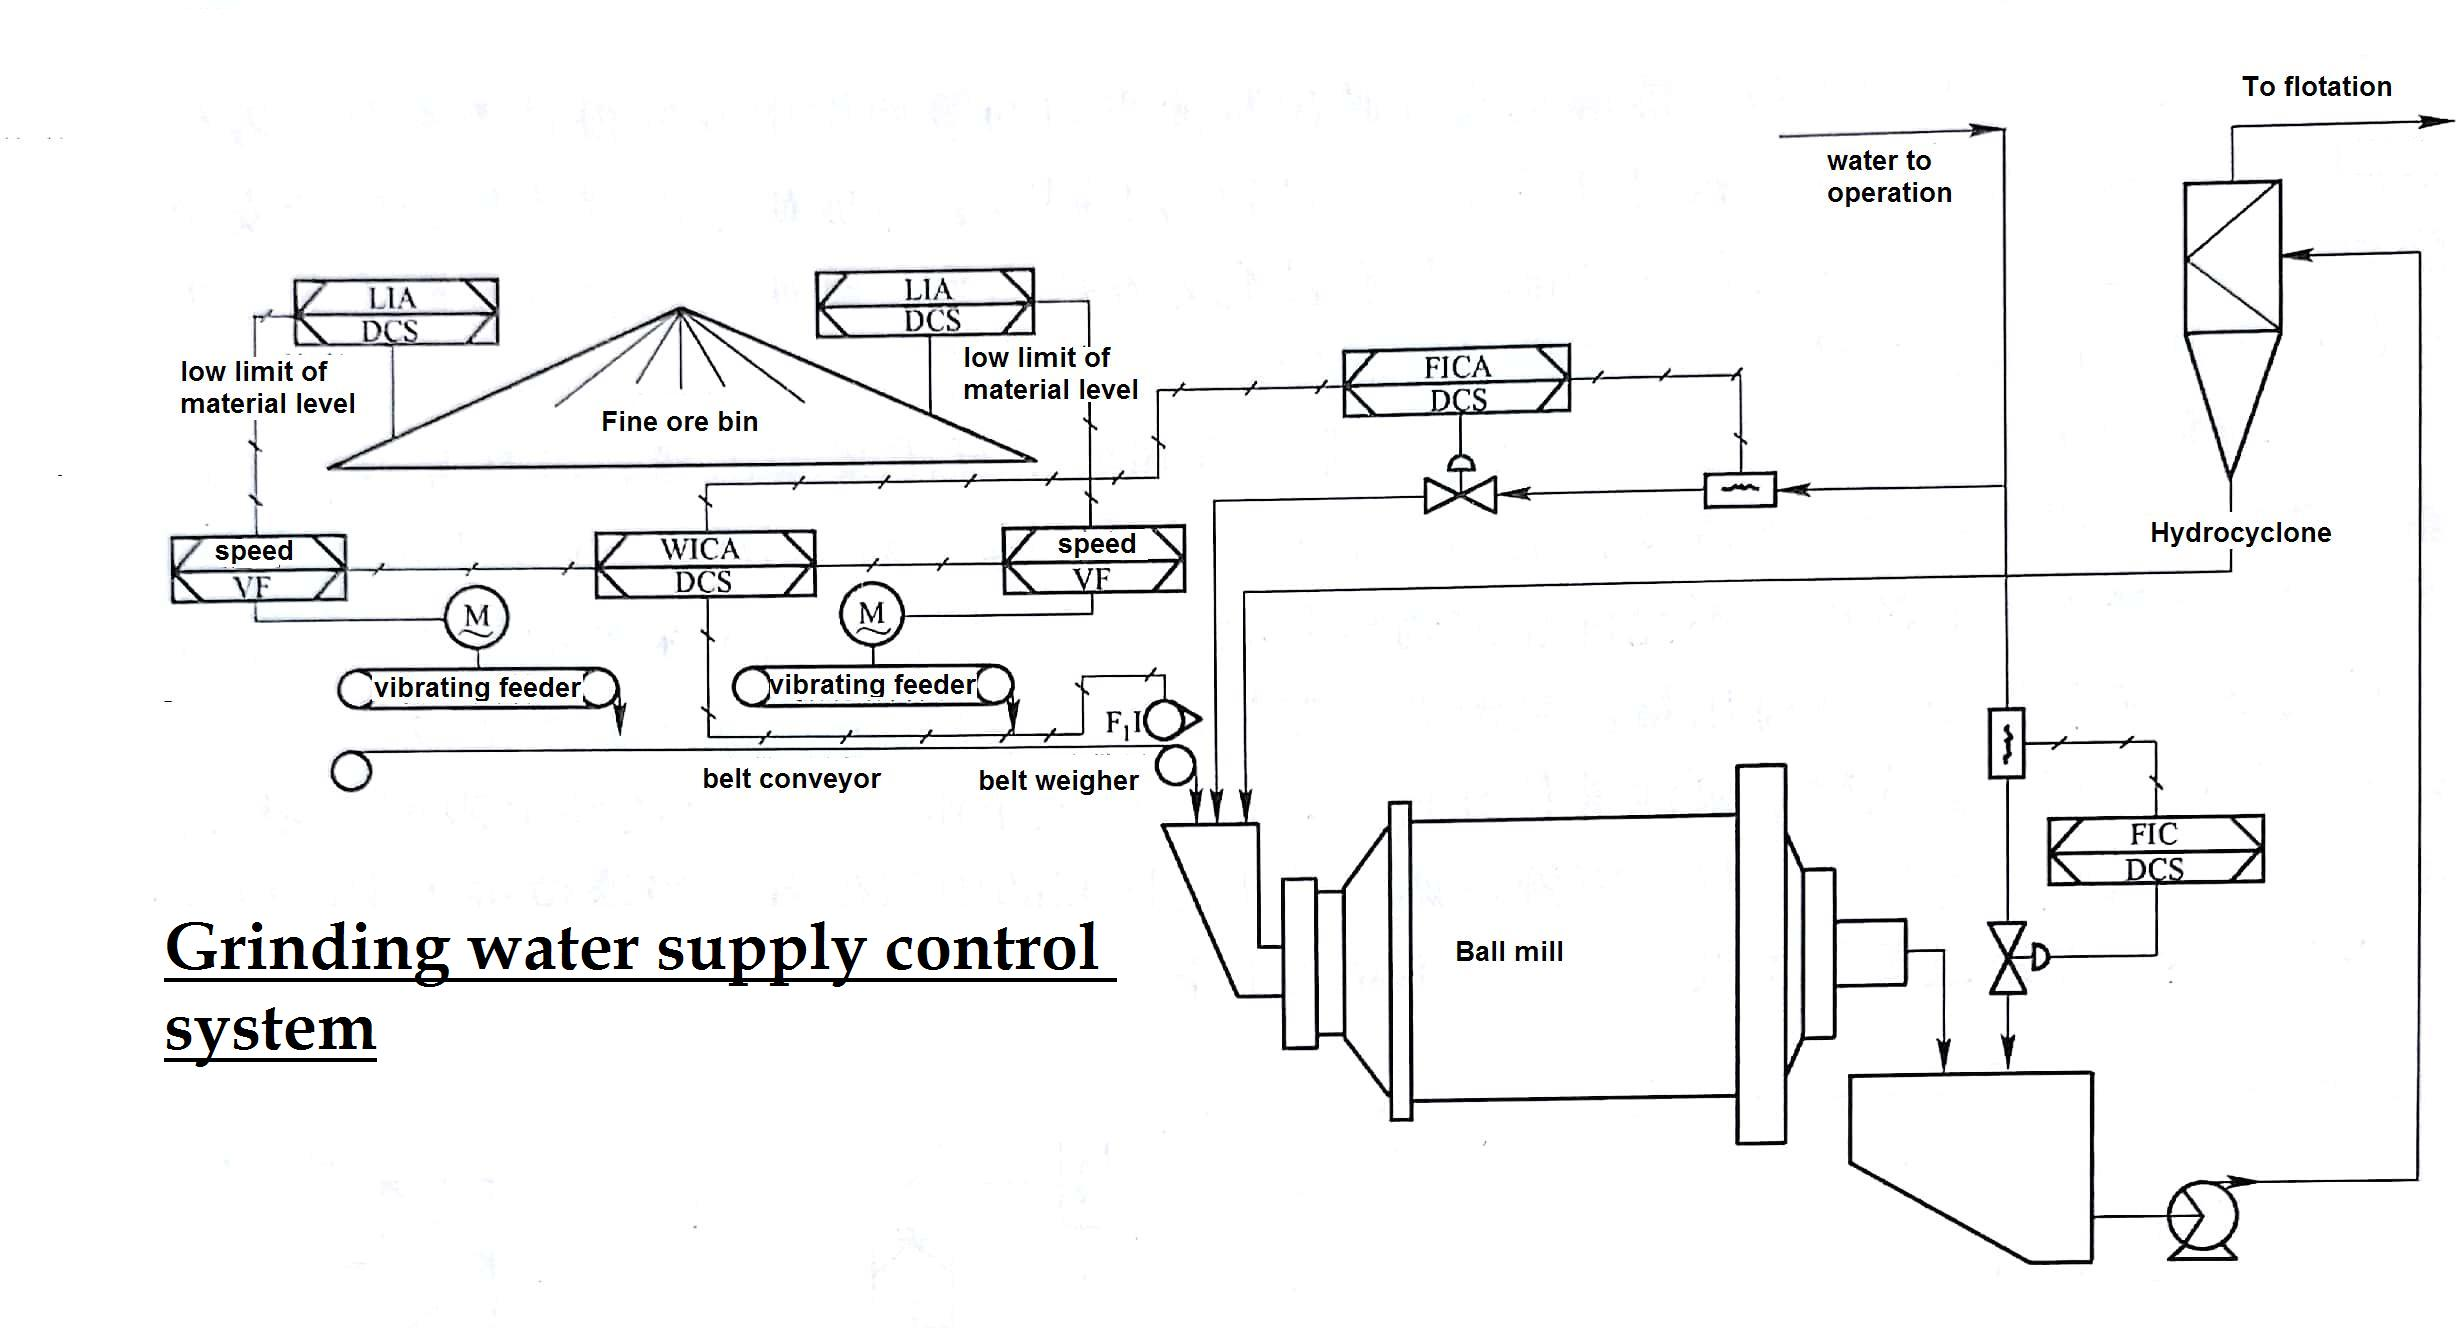 Grinding water supply control